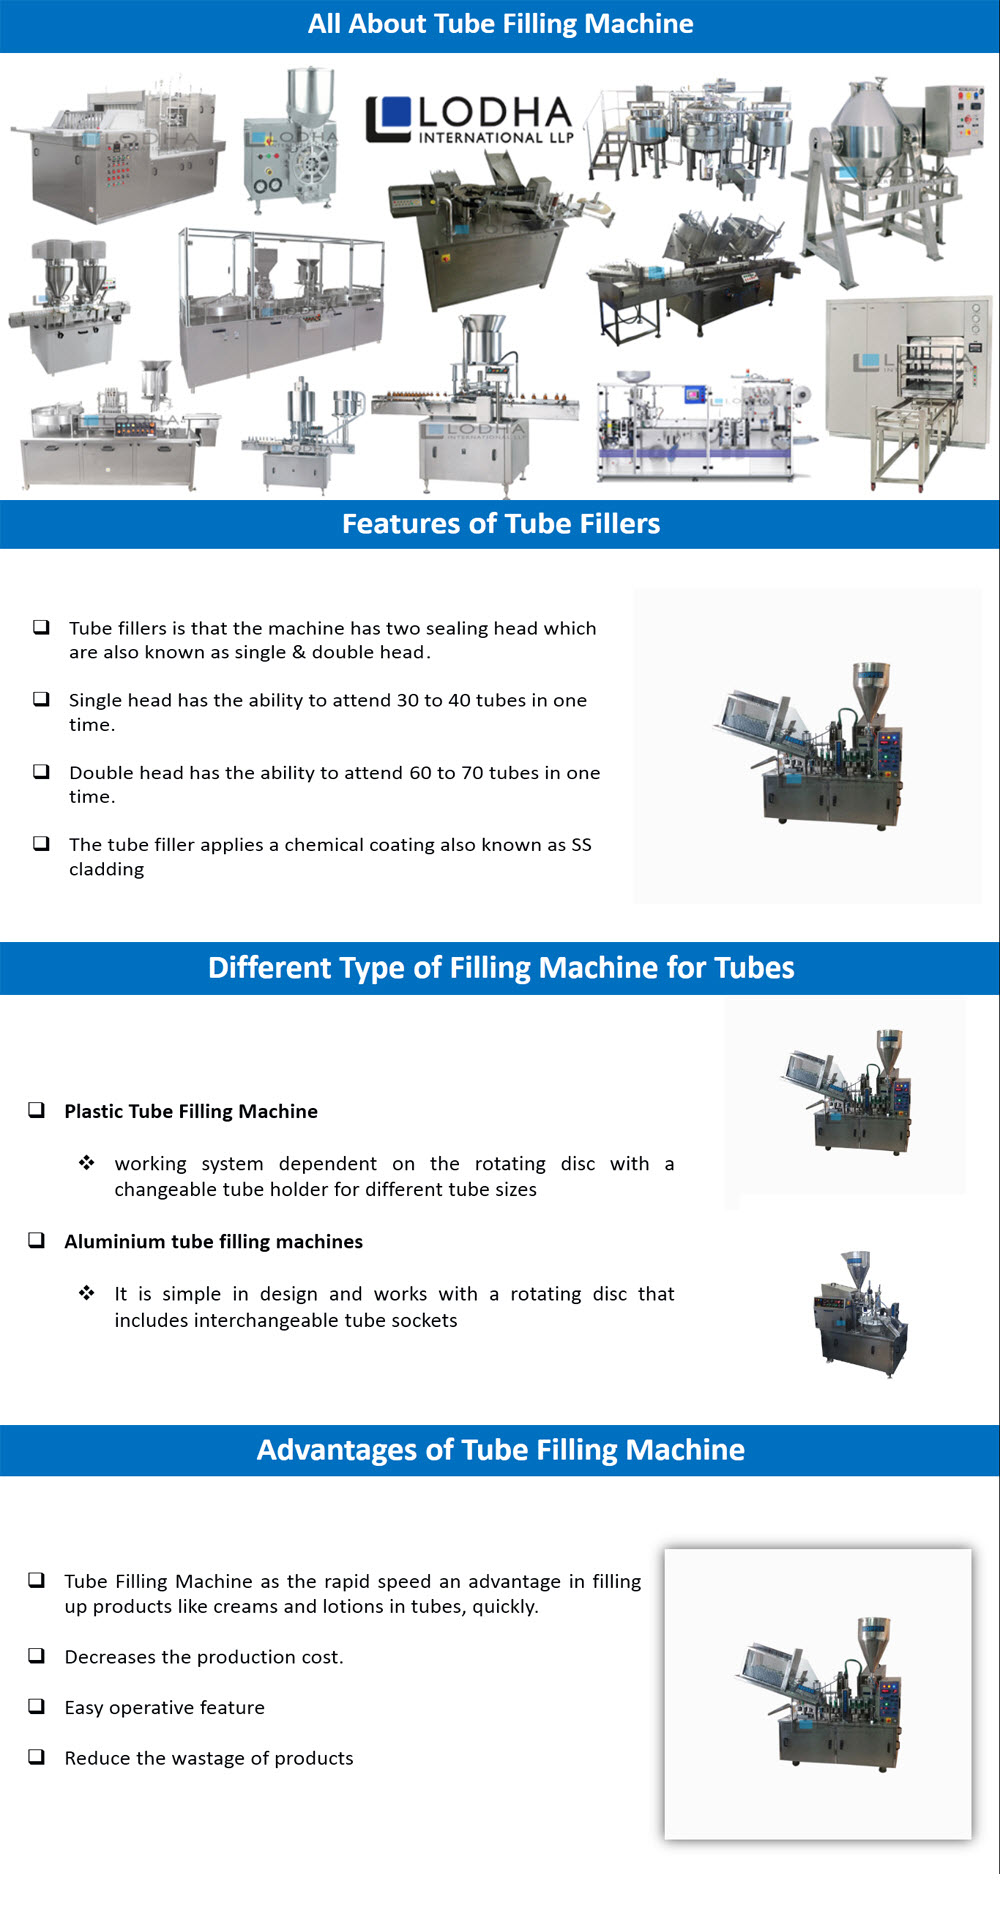 All about Tube Filling Machine